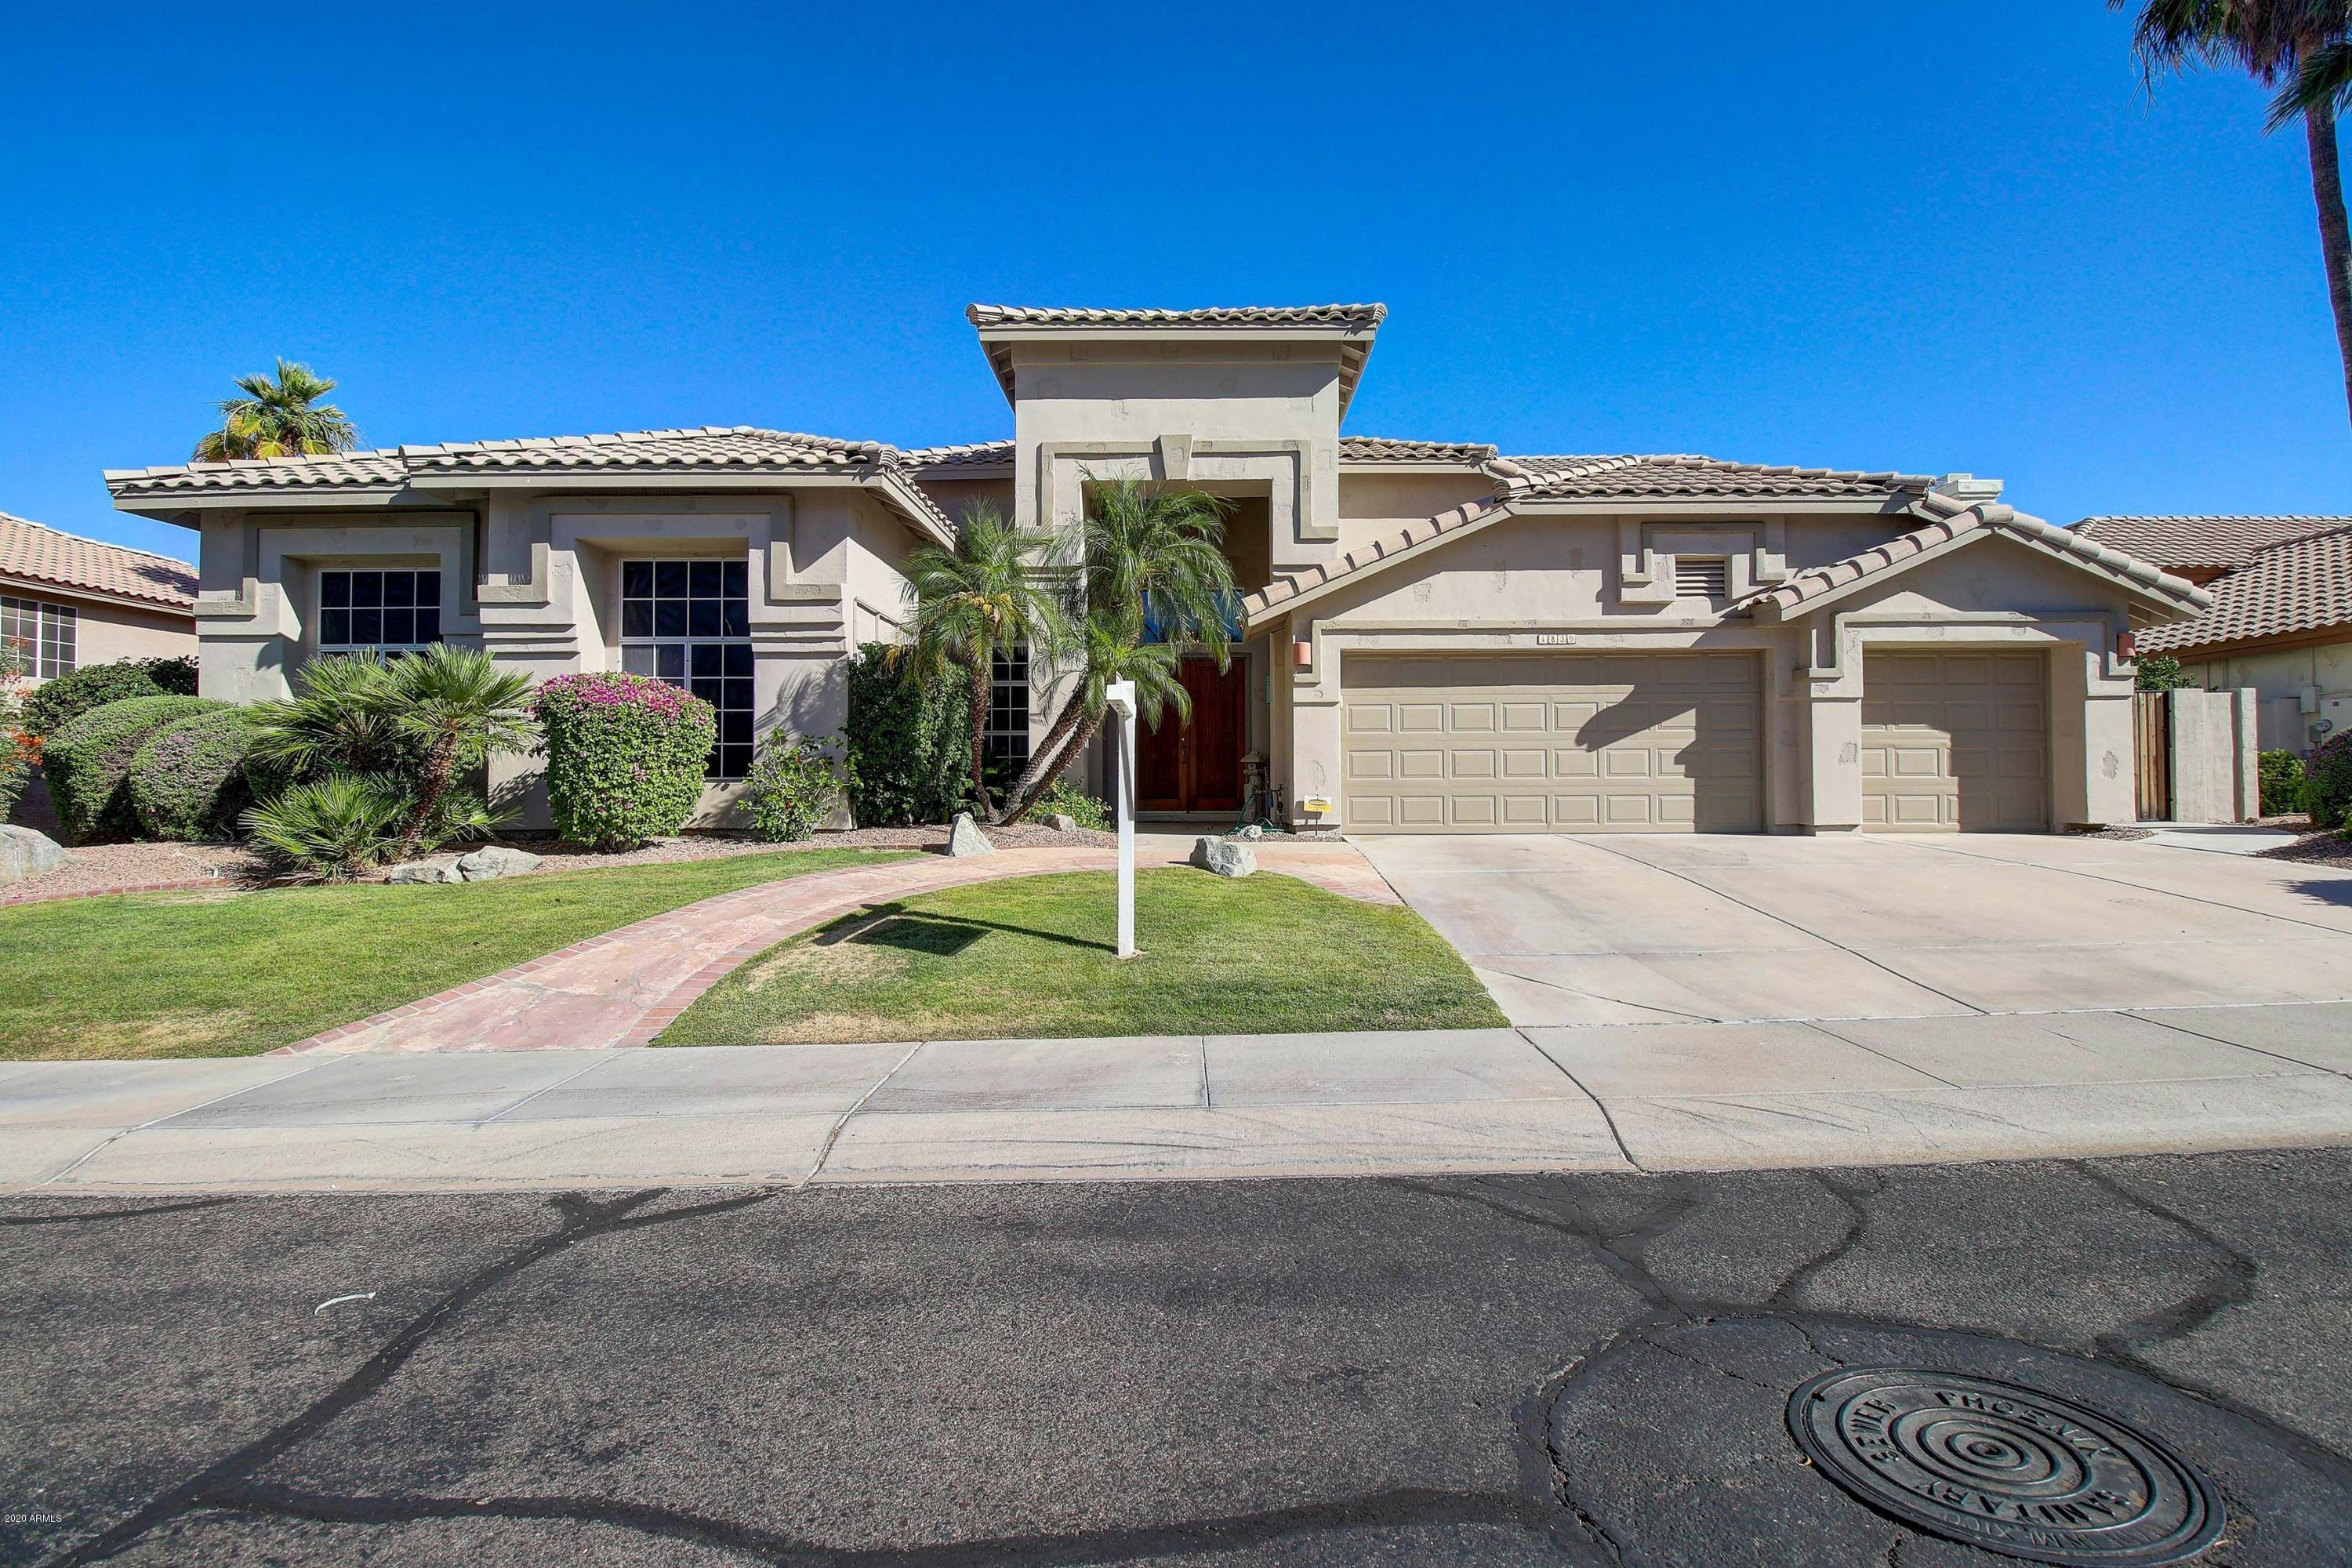 Photo of 1839 E Briarwood Terrace, Phoenix, AZ 85048